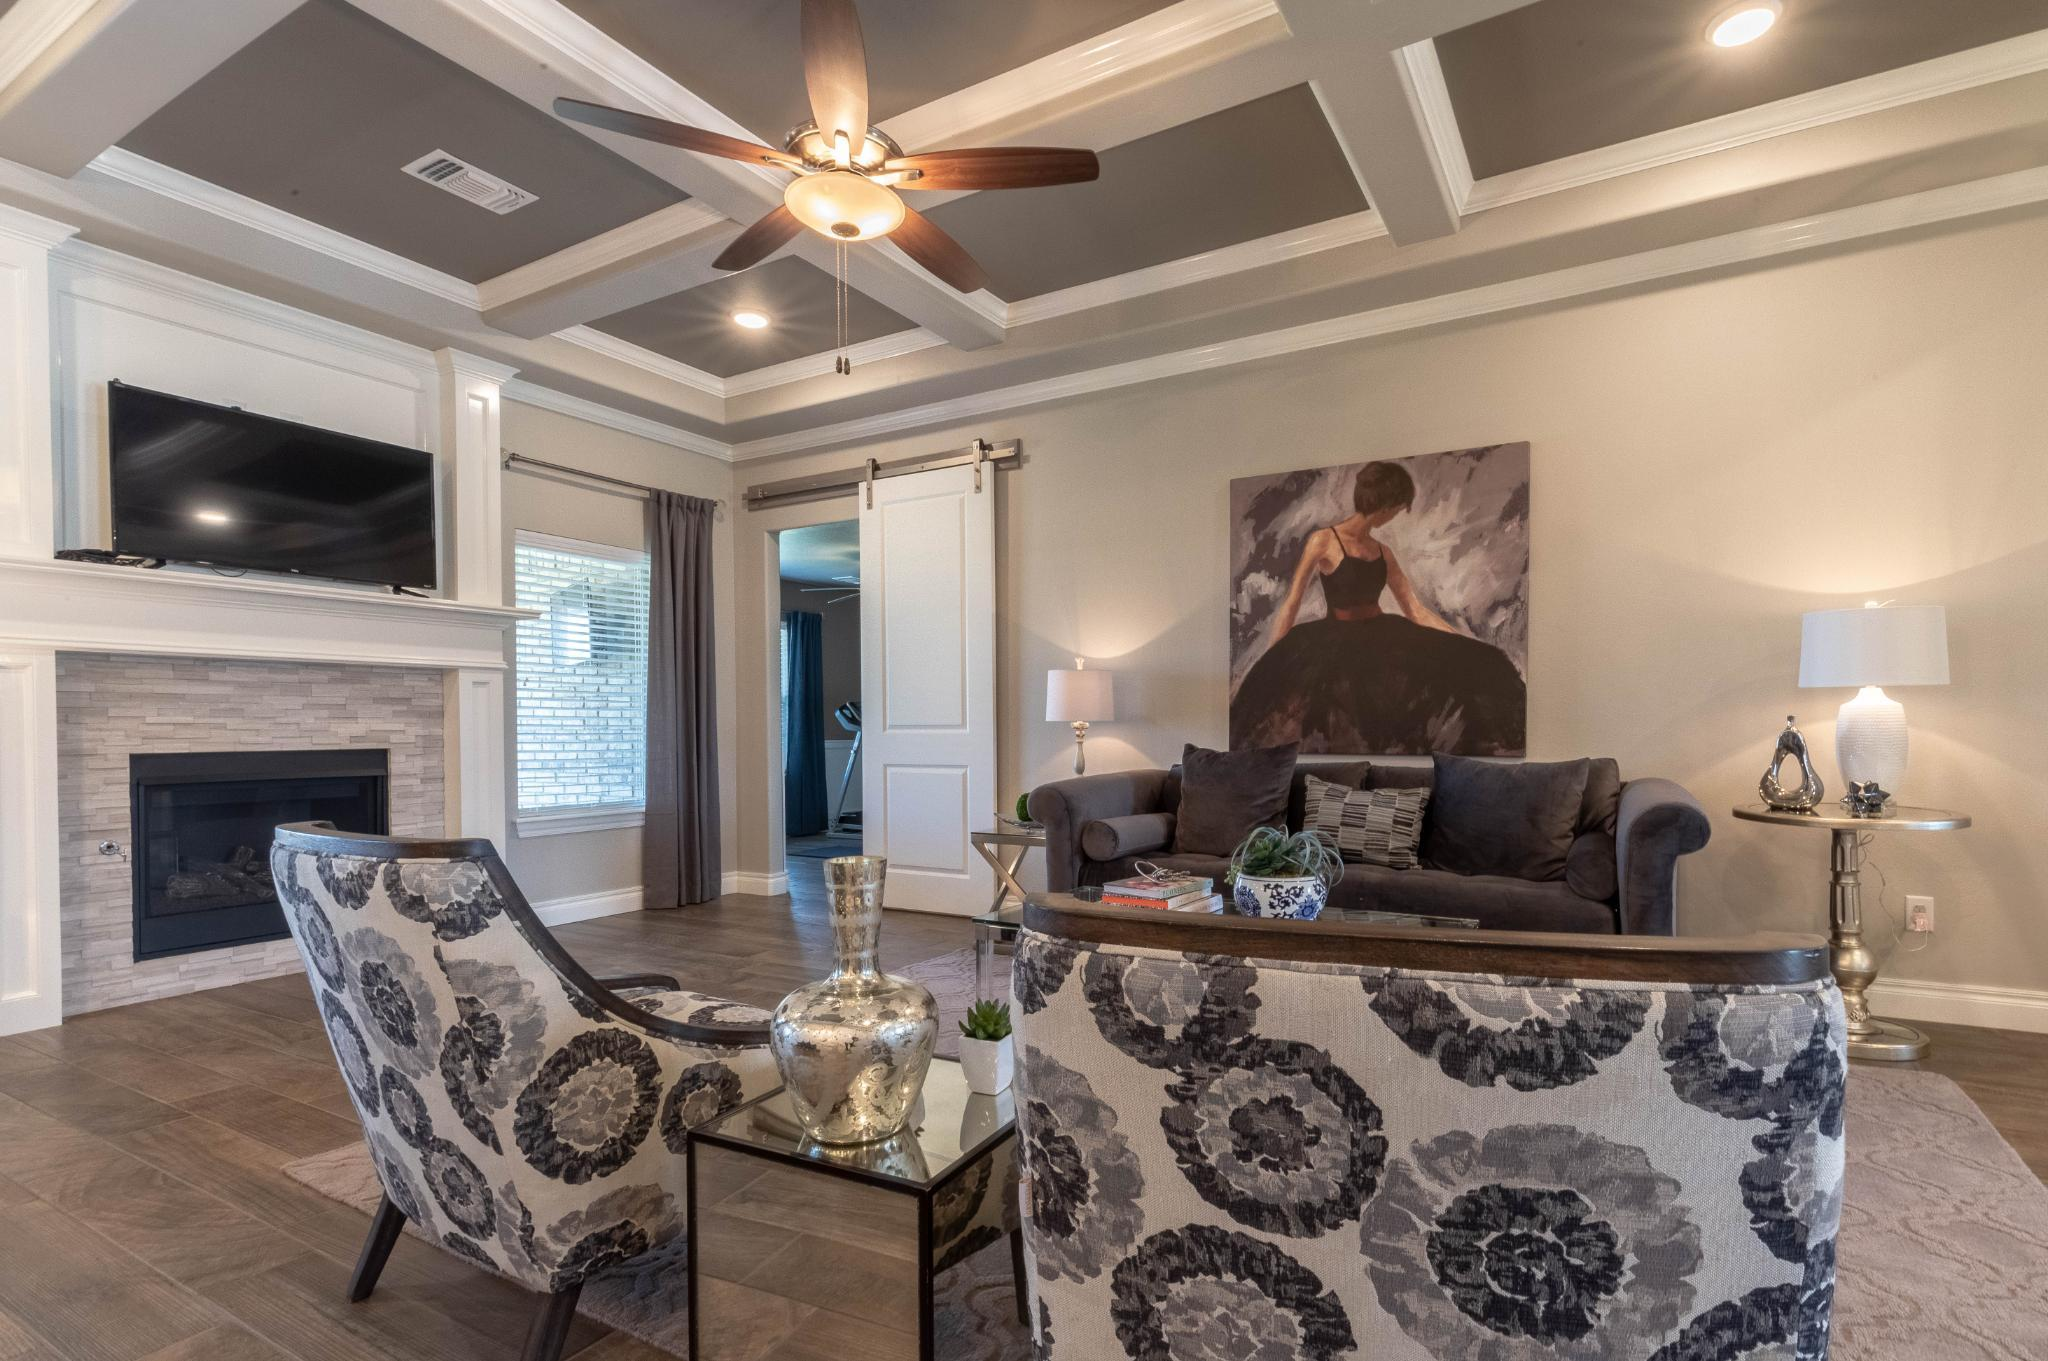 'Ponderosa Estates' by Homes By Taber in Oklahoma City